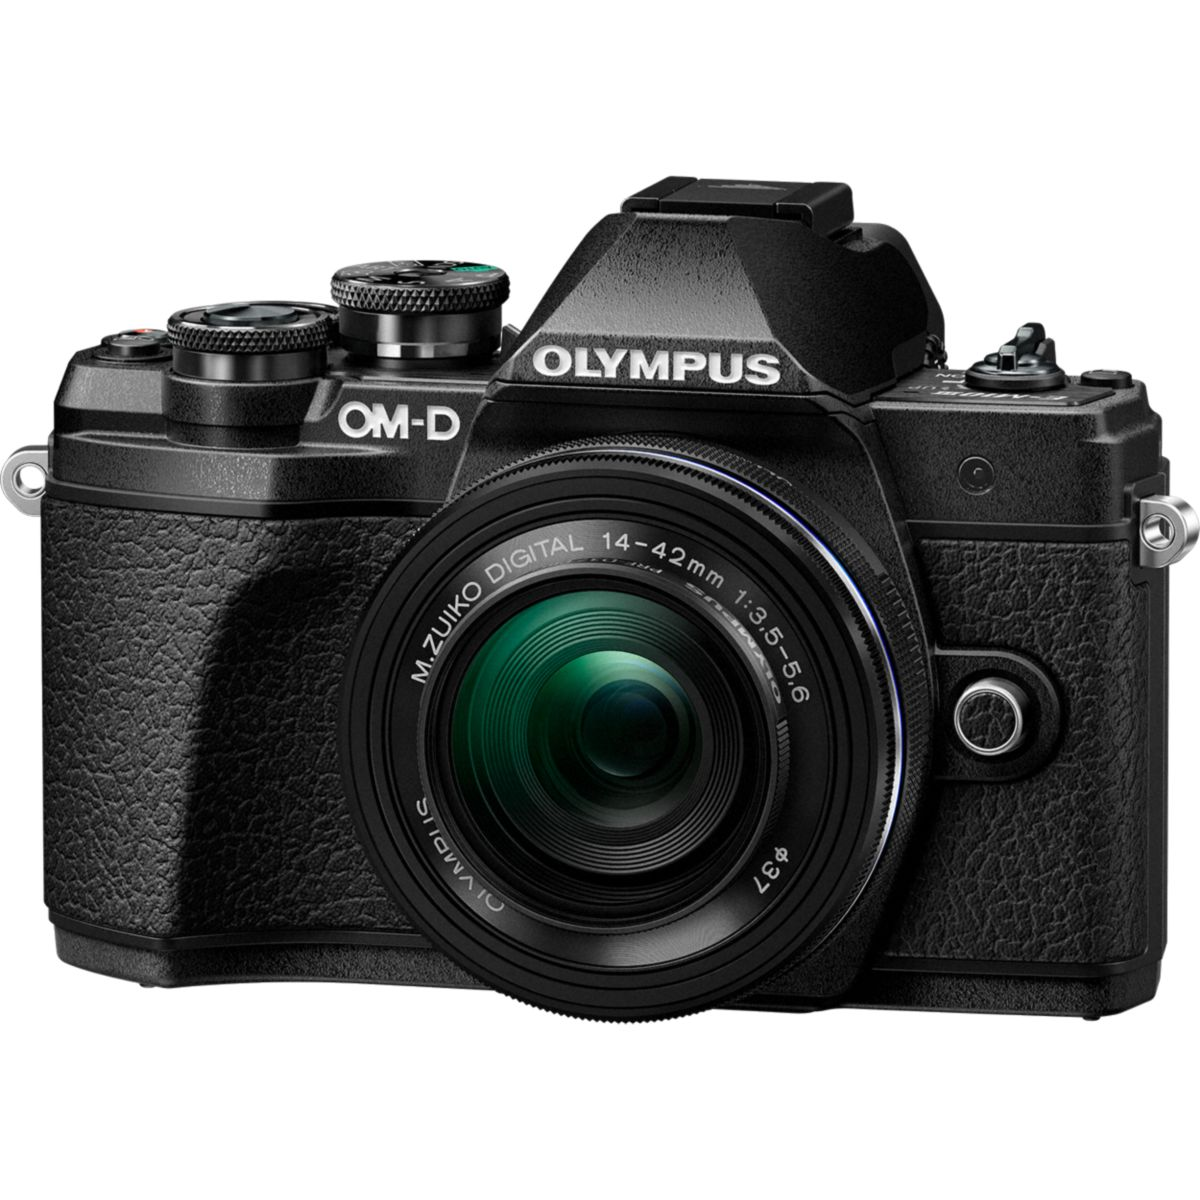 Appareil photo Hybride OLYMPUS OM-D E-M10 Mark III + 14-42mm N...